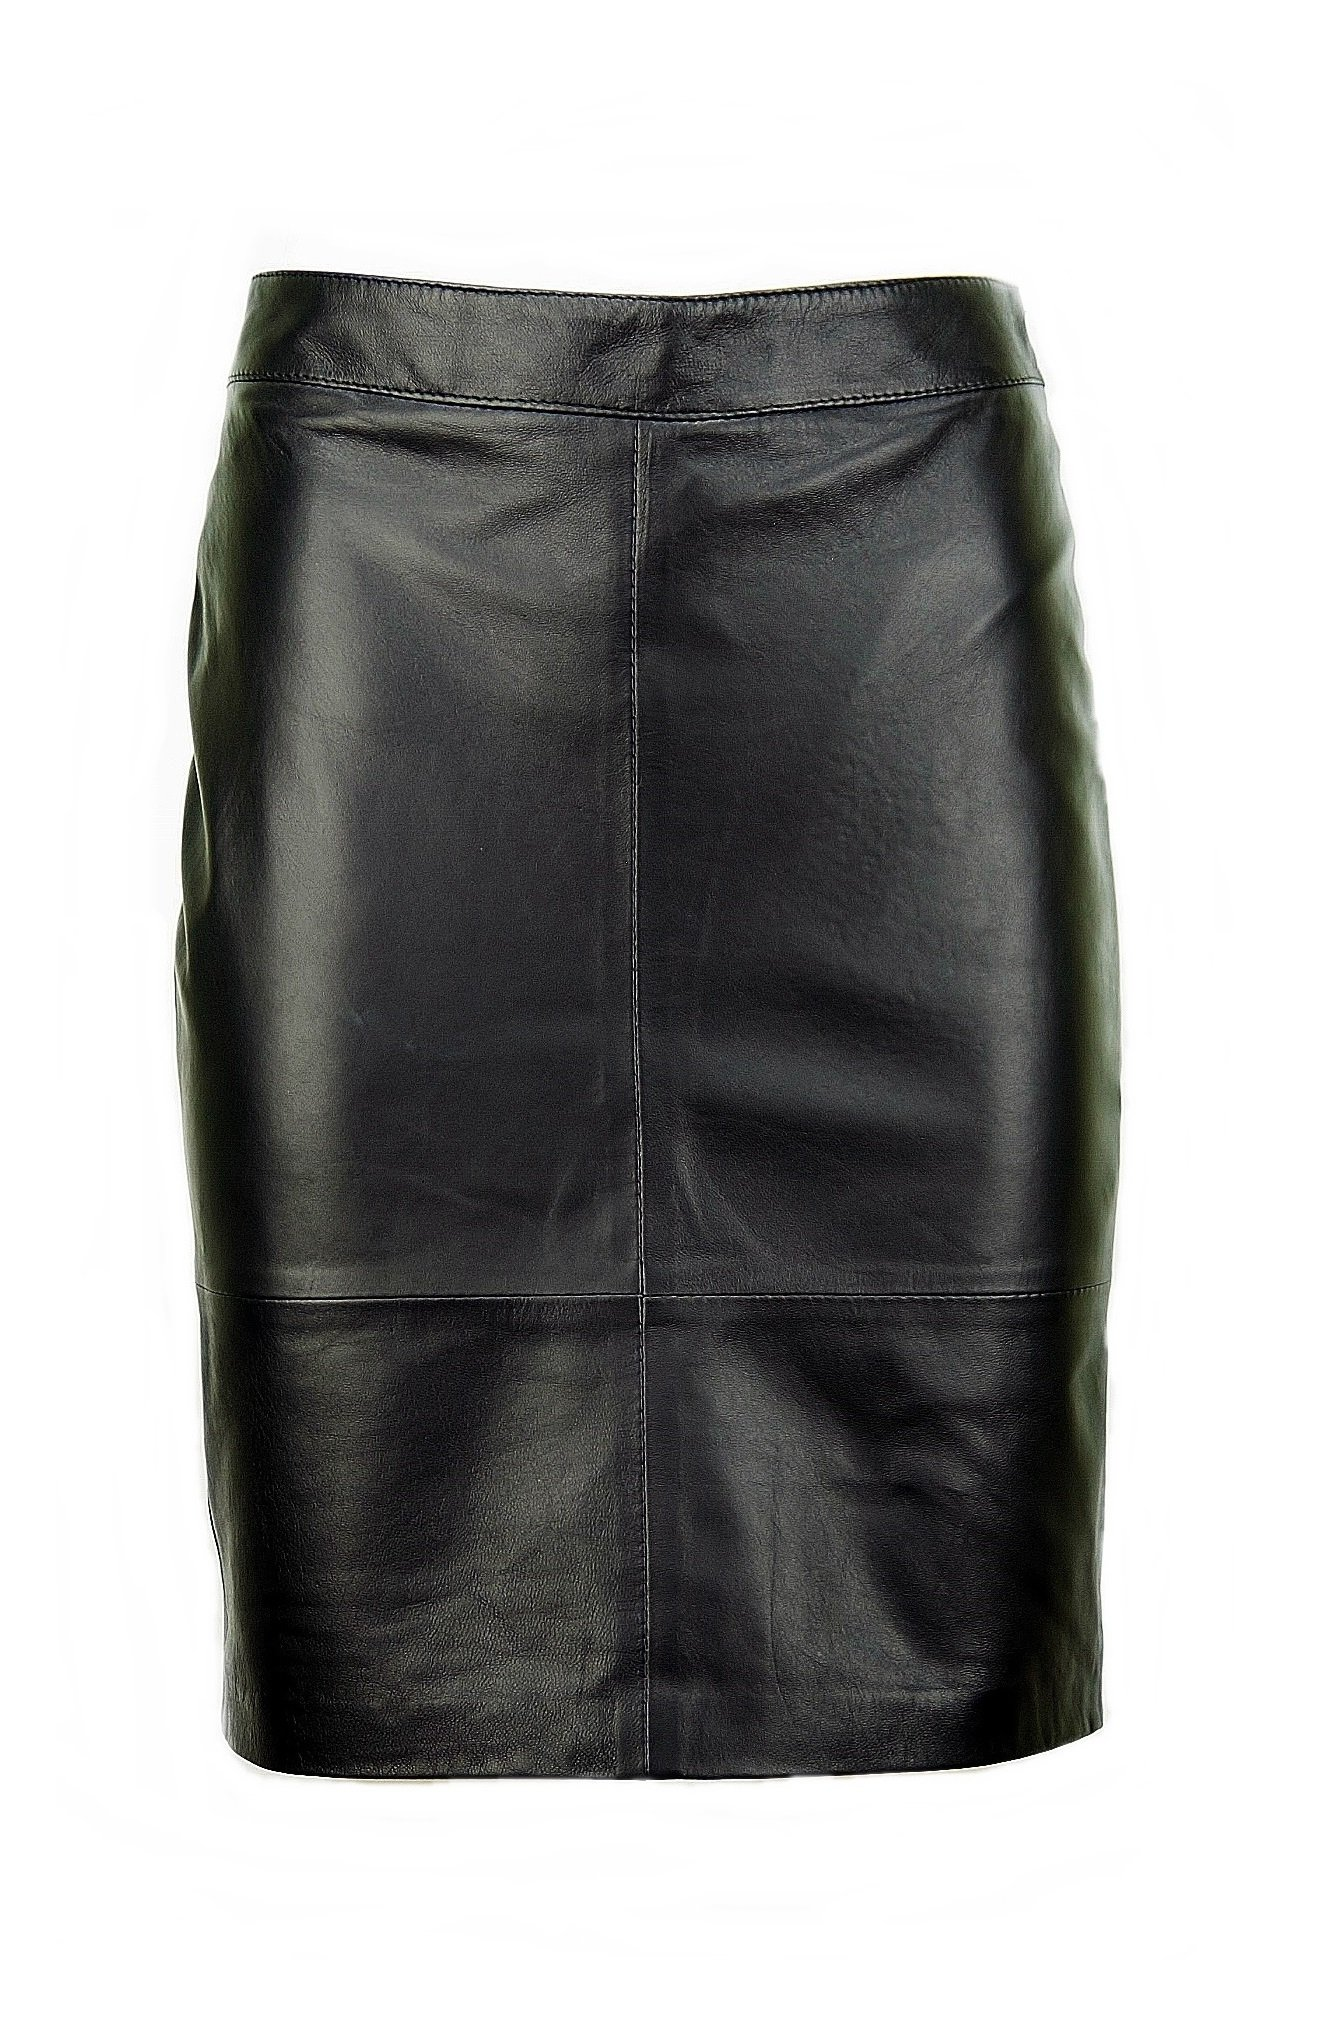 Women's Leather Skirt, Black Pencil Skirt, Midi Ksp-0001 (L)